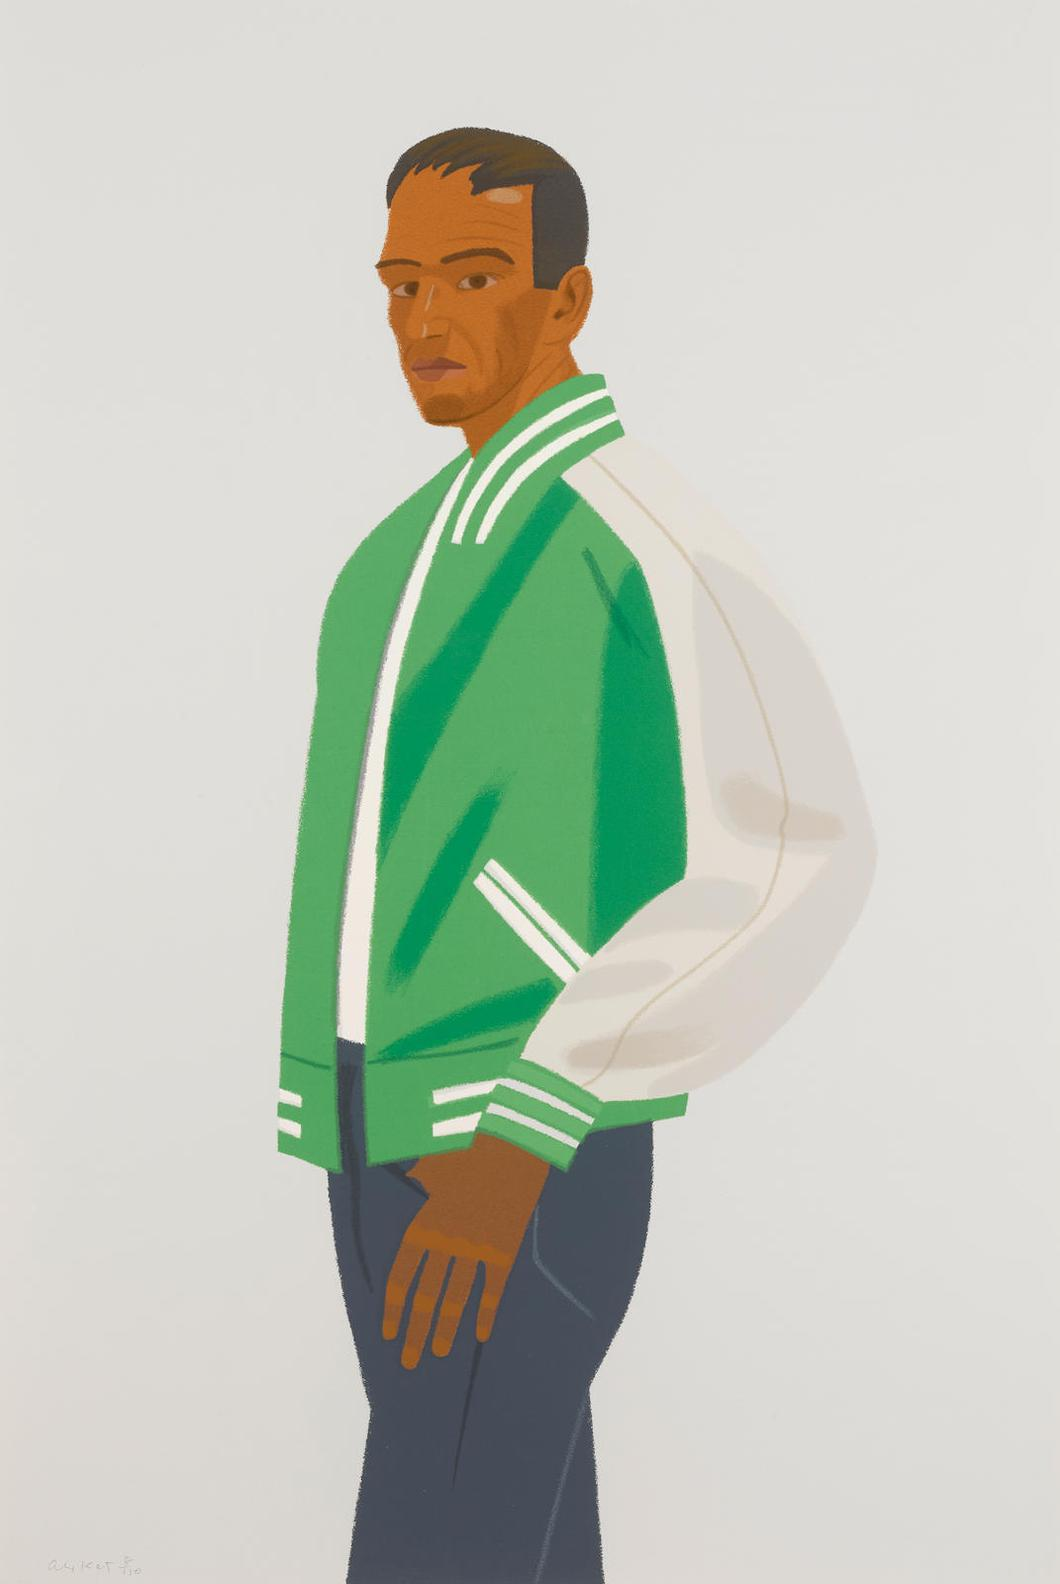 Alex Katz-Sweatshirt Ii And Green Jacket, From Alex And Ada The 1960s To The 1980s-1990